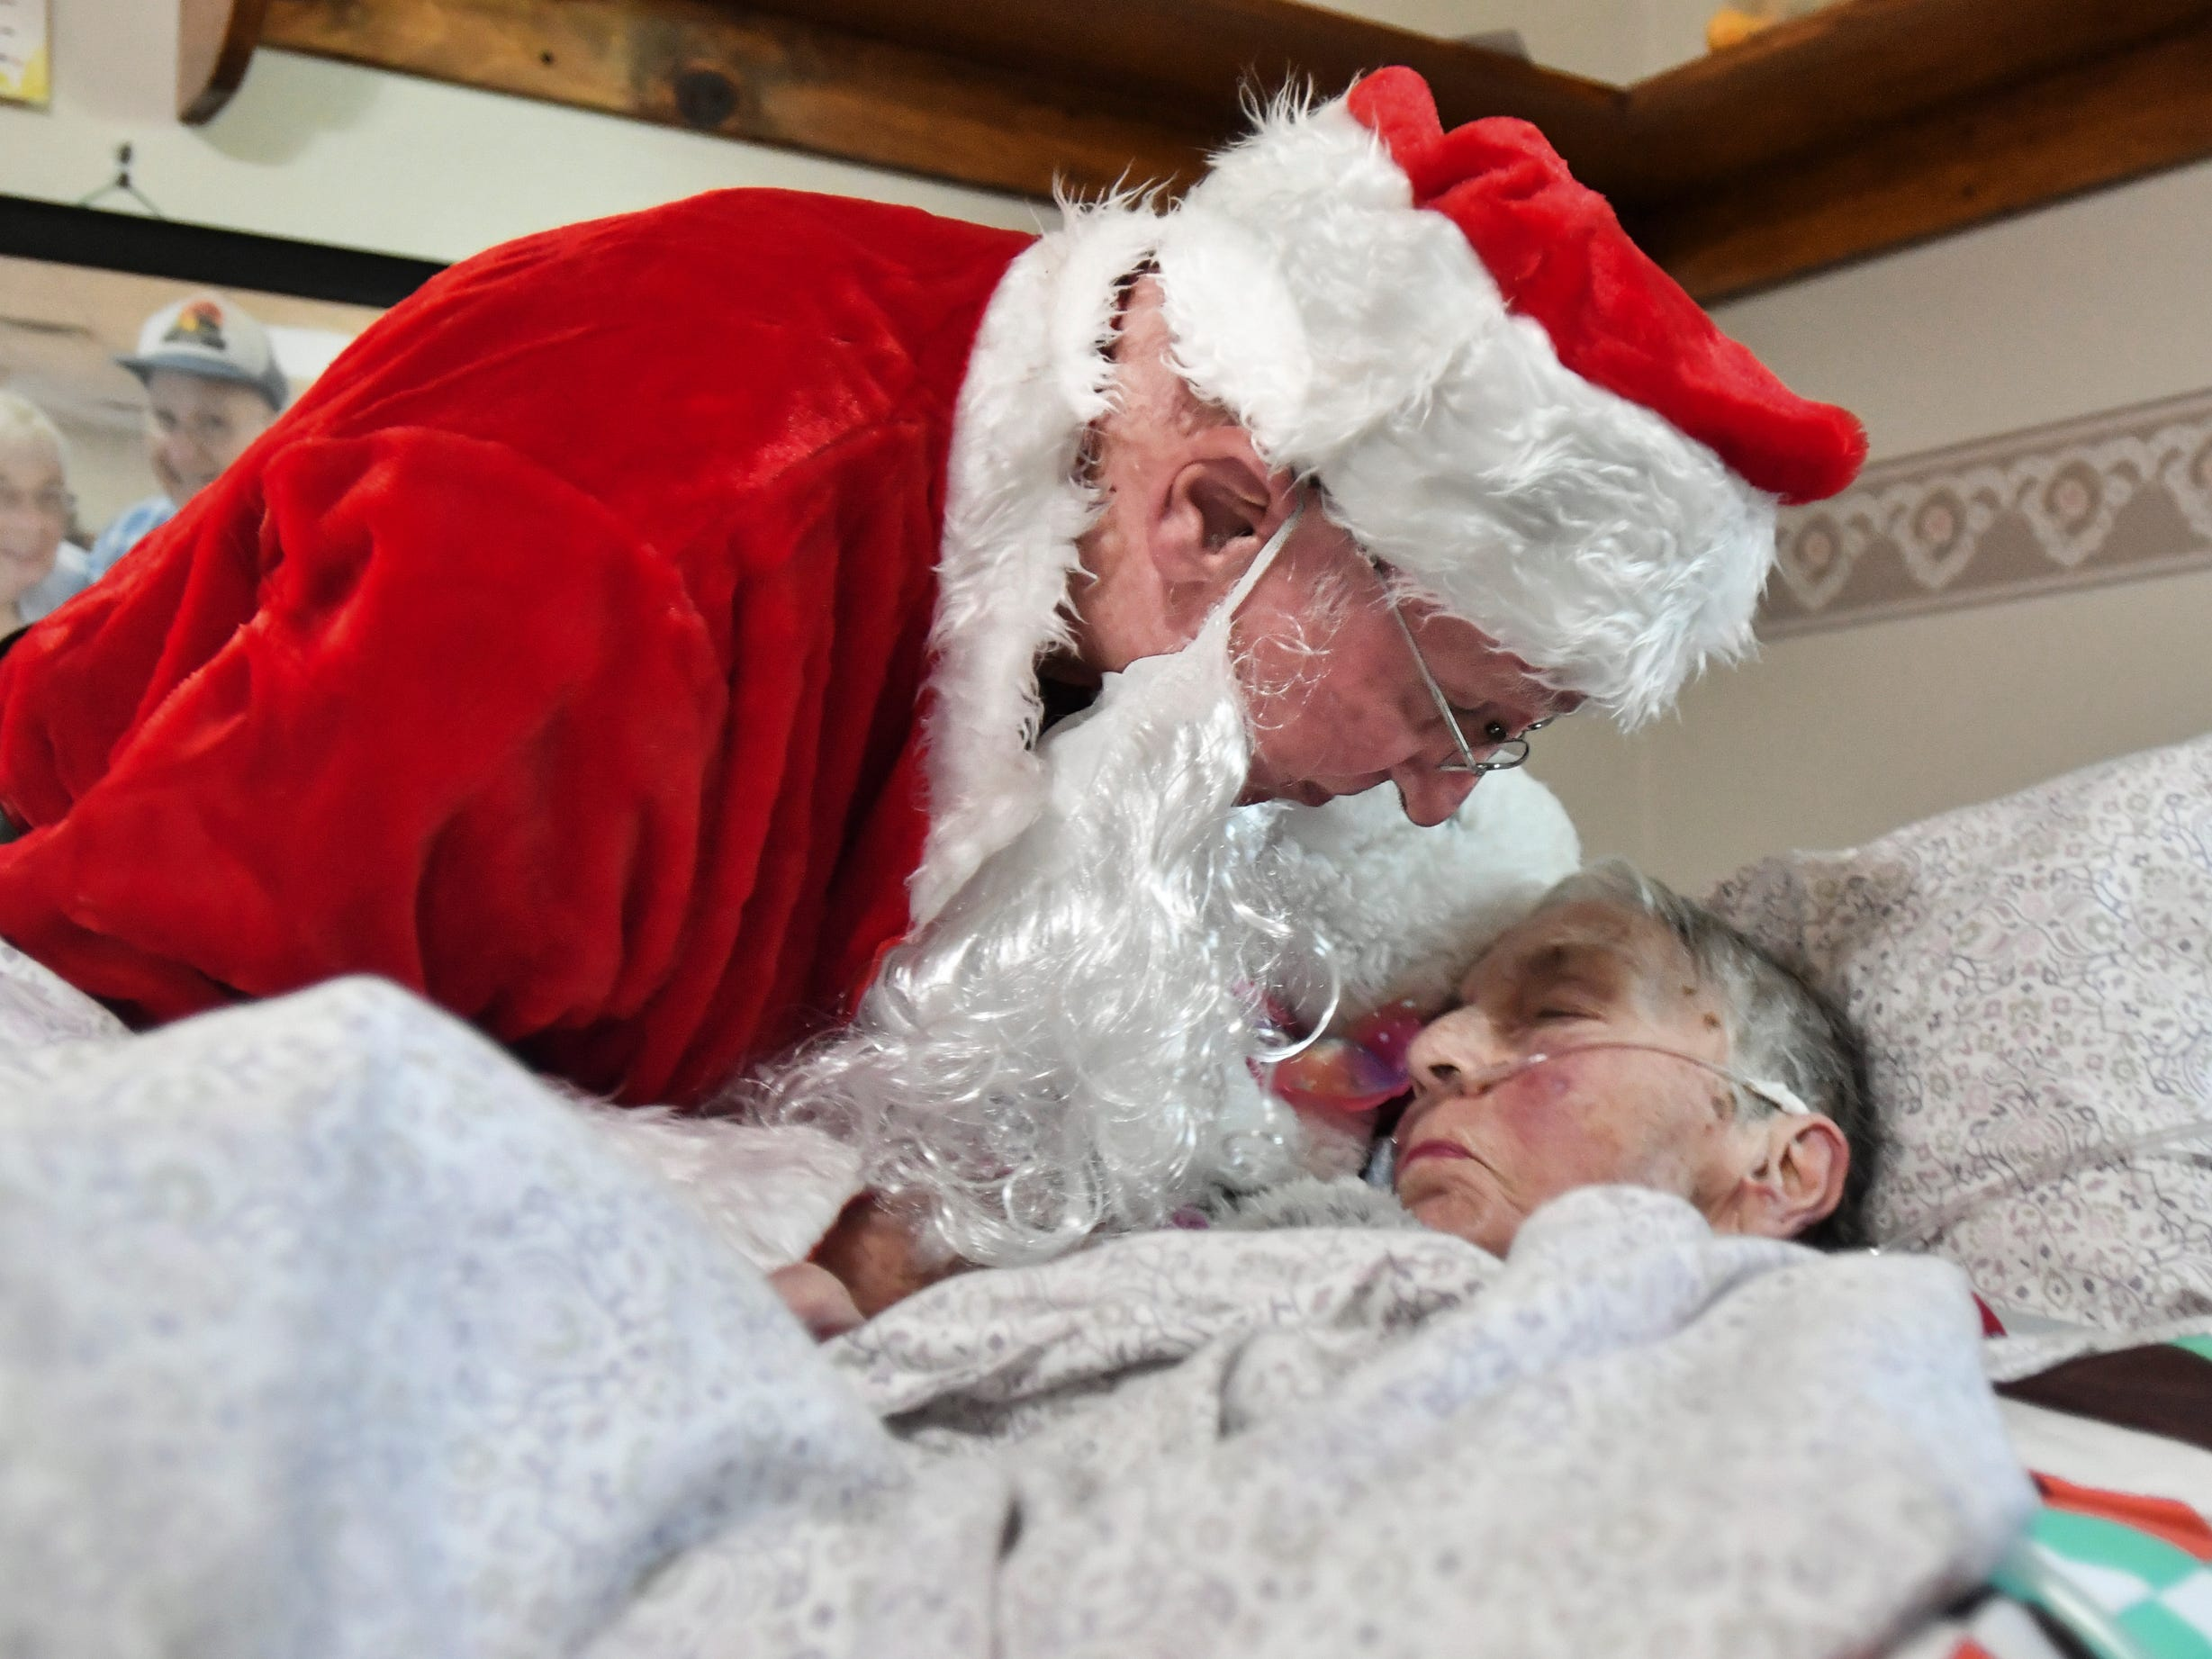 Don West, 90, of Eaton Rapids, leans in to kiss his wife Jackie goodnight, Saturday, Dec. 8, 2018, at Golden Days II Adult Foster Care in Charlotte following a Christmas party for residents and staff at the home.  Don hired a musician, brought gifts, and sang and danced for his wife of 64 years.  Jackie has been in a nursing home since her stroke in June of 2017.